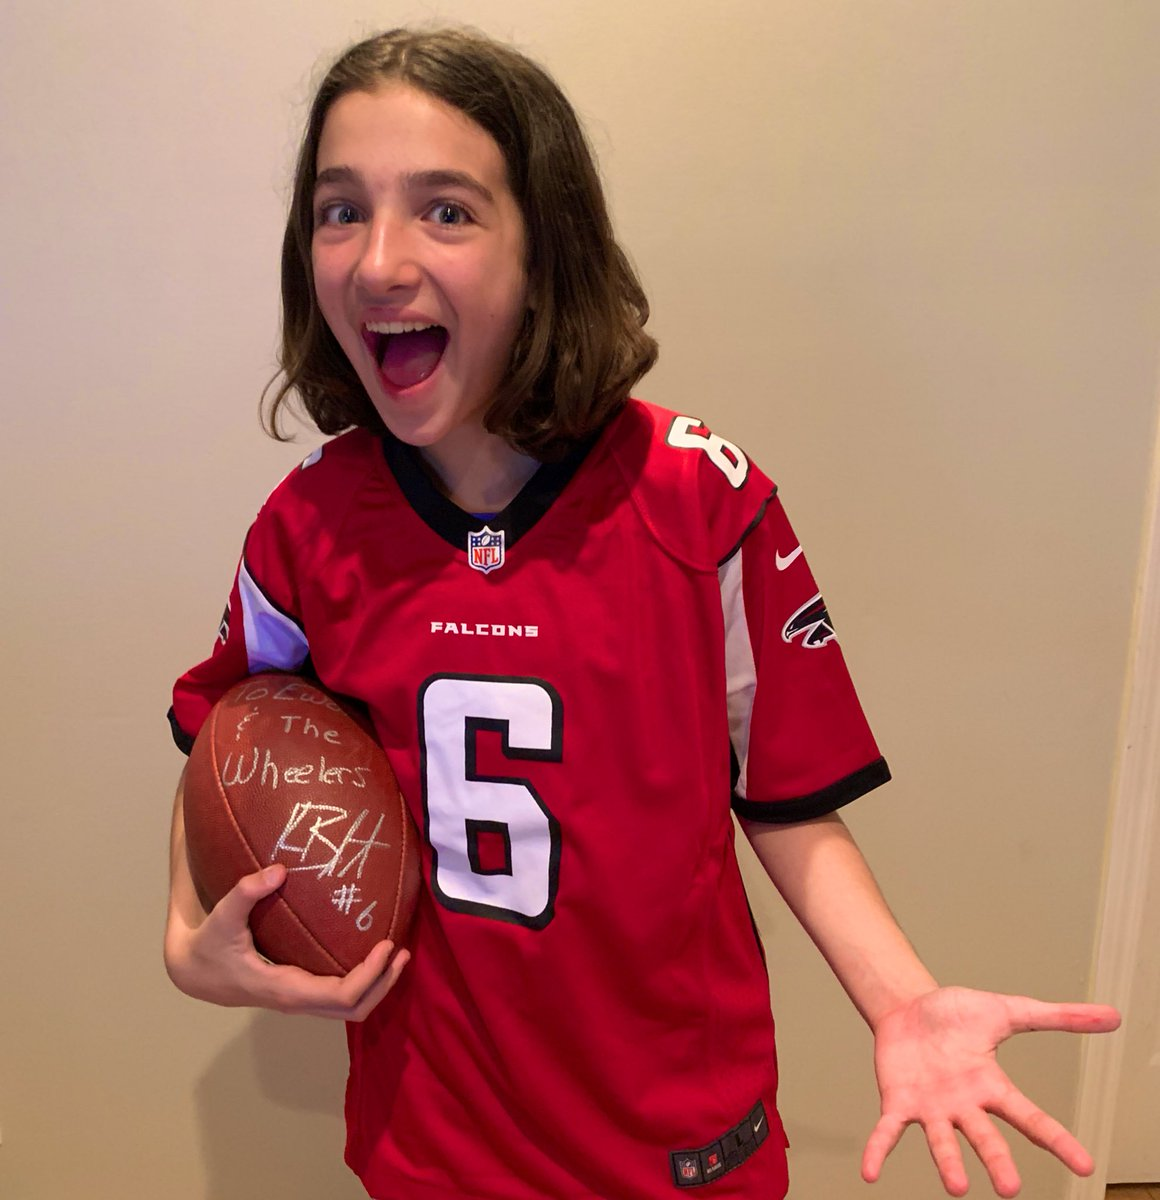 Is The Pro Happy In Fortnite Faze Ewok On Twitter Wow Kurtbenkert Is Da Man He Sent Me This Awesome Gift A Falcons Uniform With His Number 6 I Am So Happy And Am Wearing It Now Rise